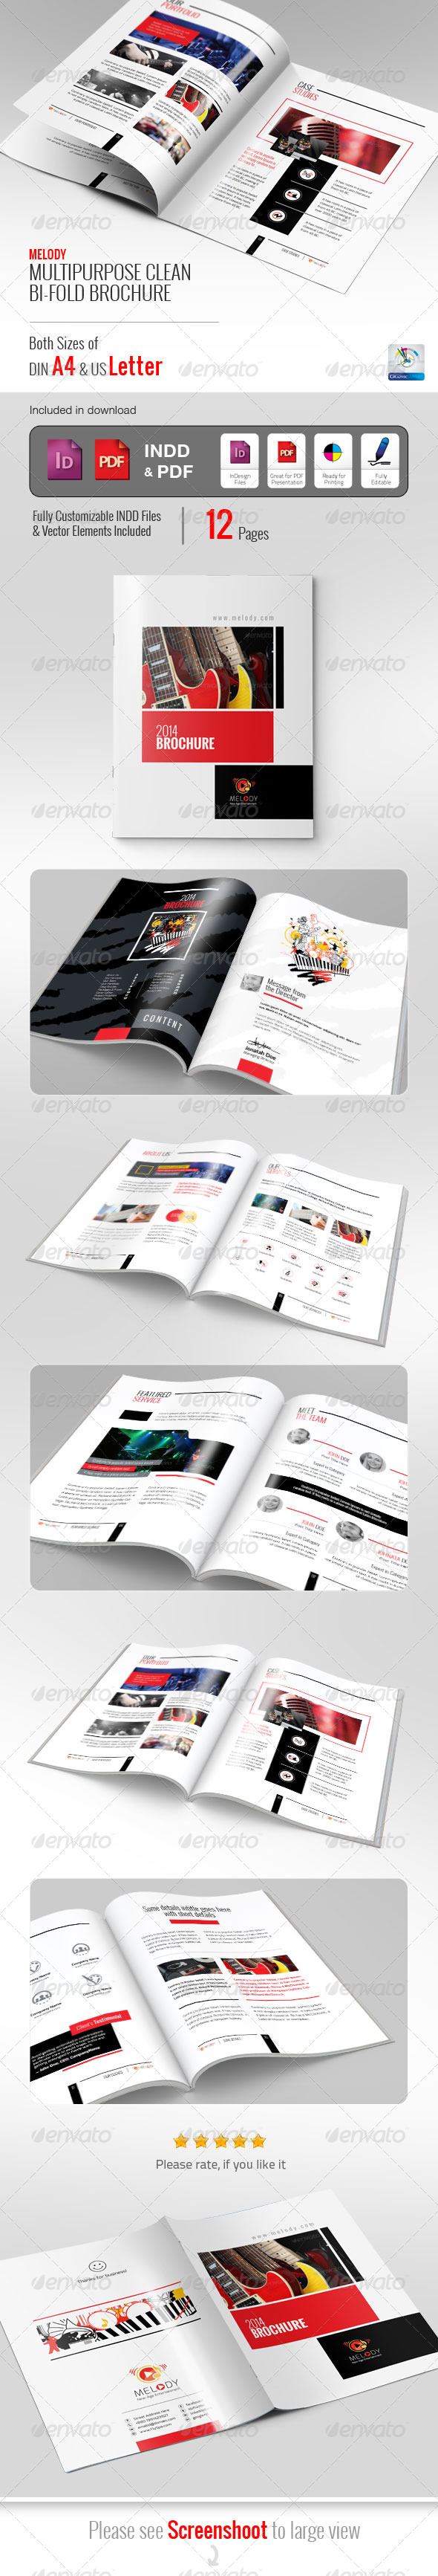 GraphicRiver Melody Clean Bifold Brochure 5816693